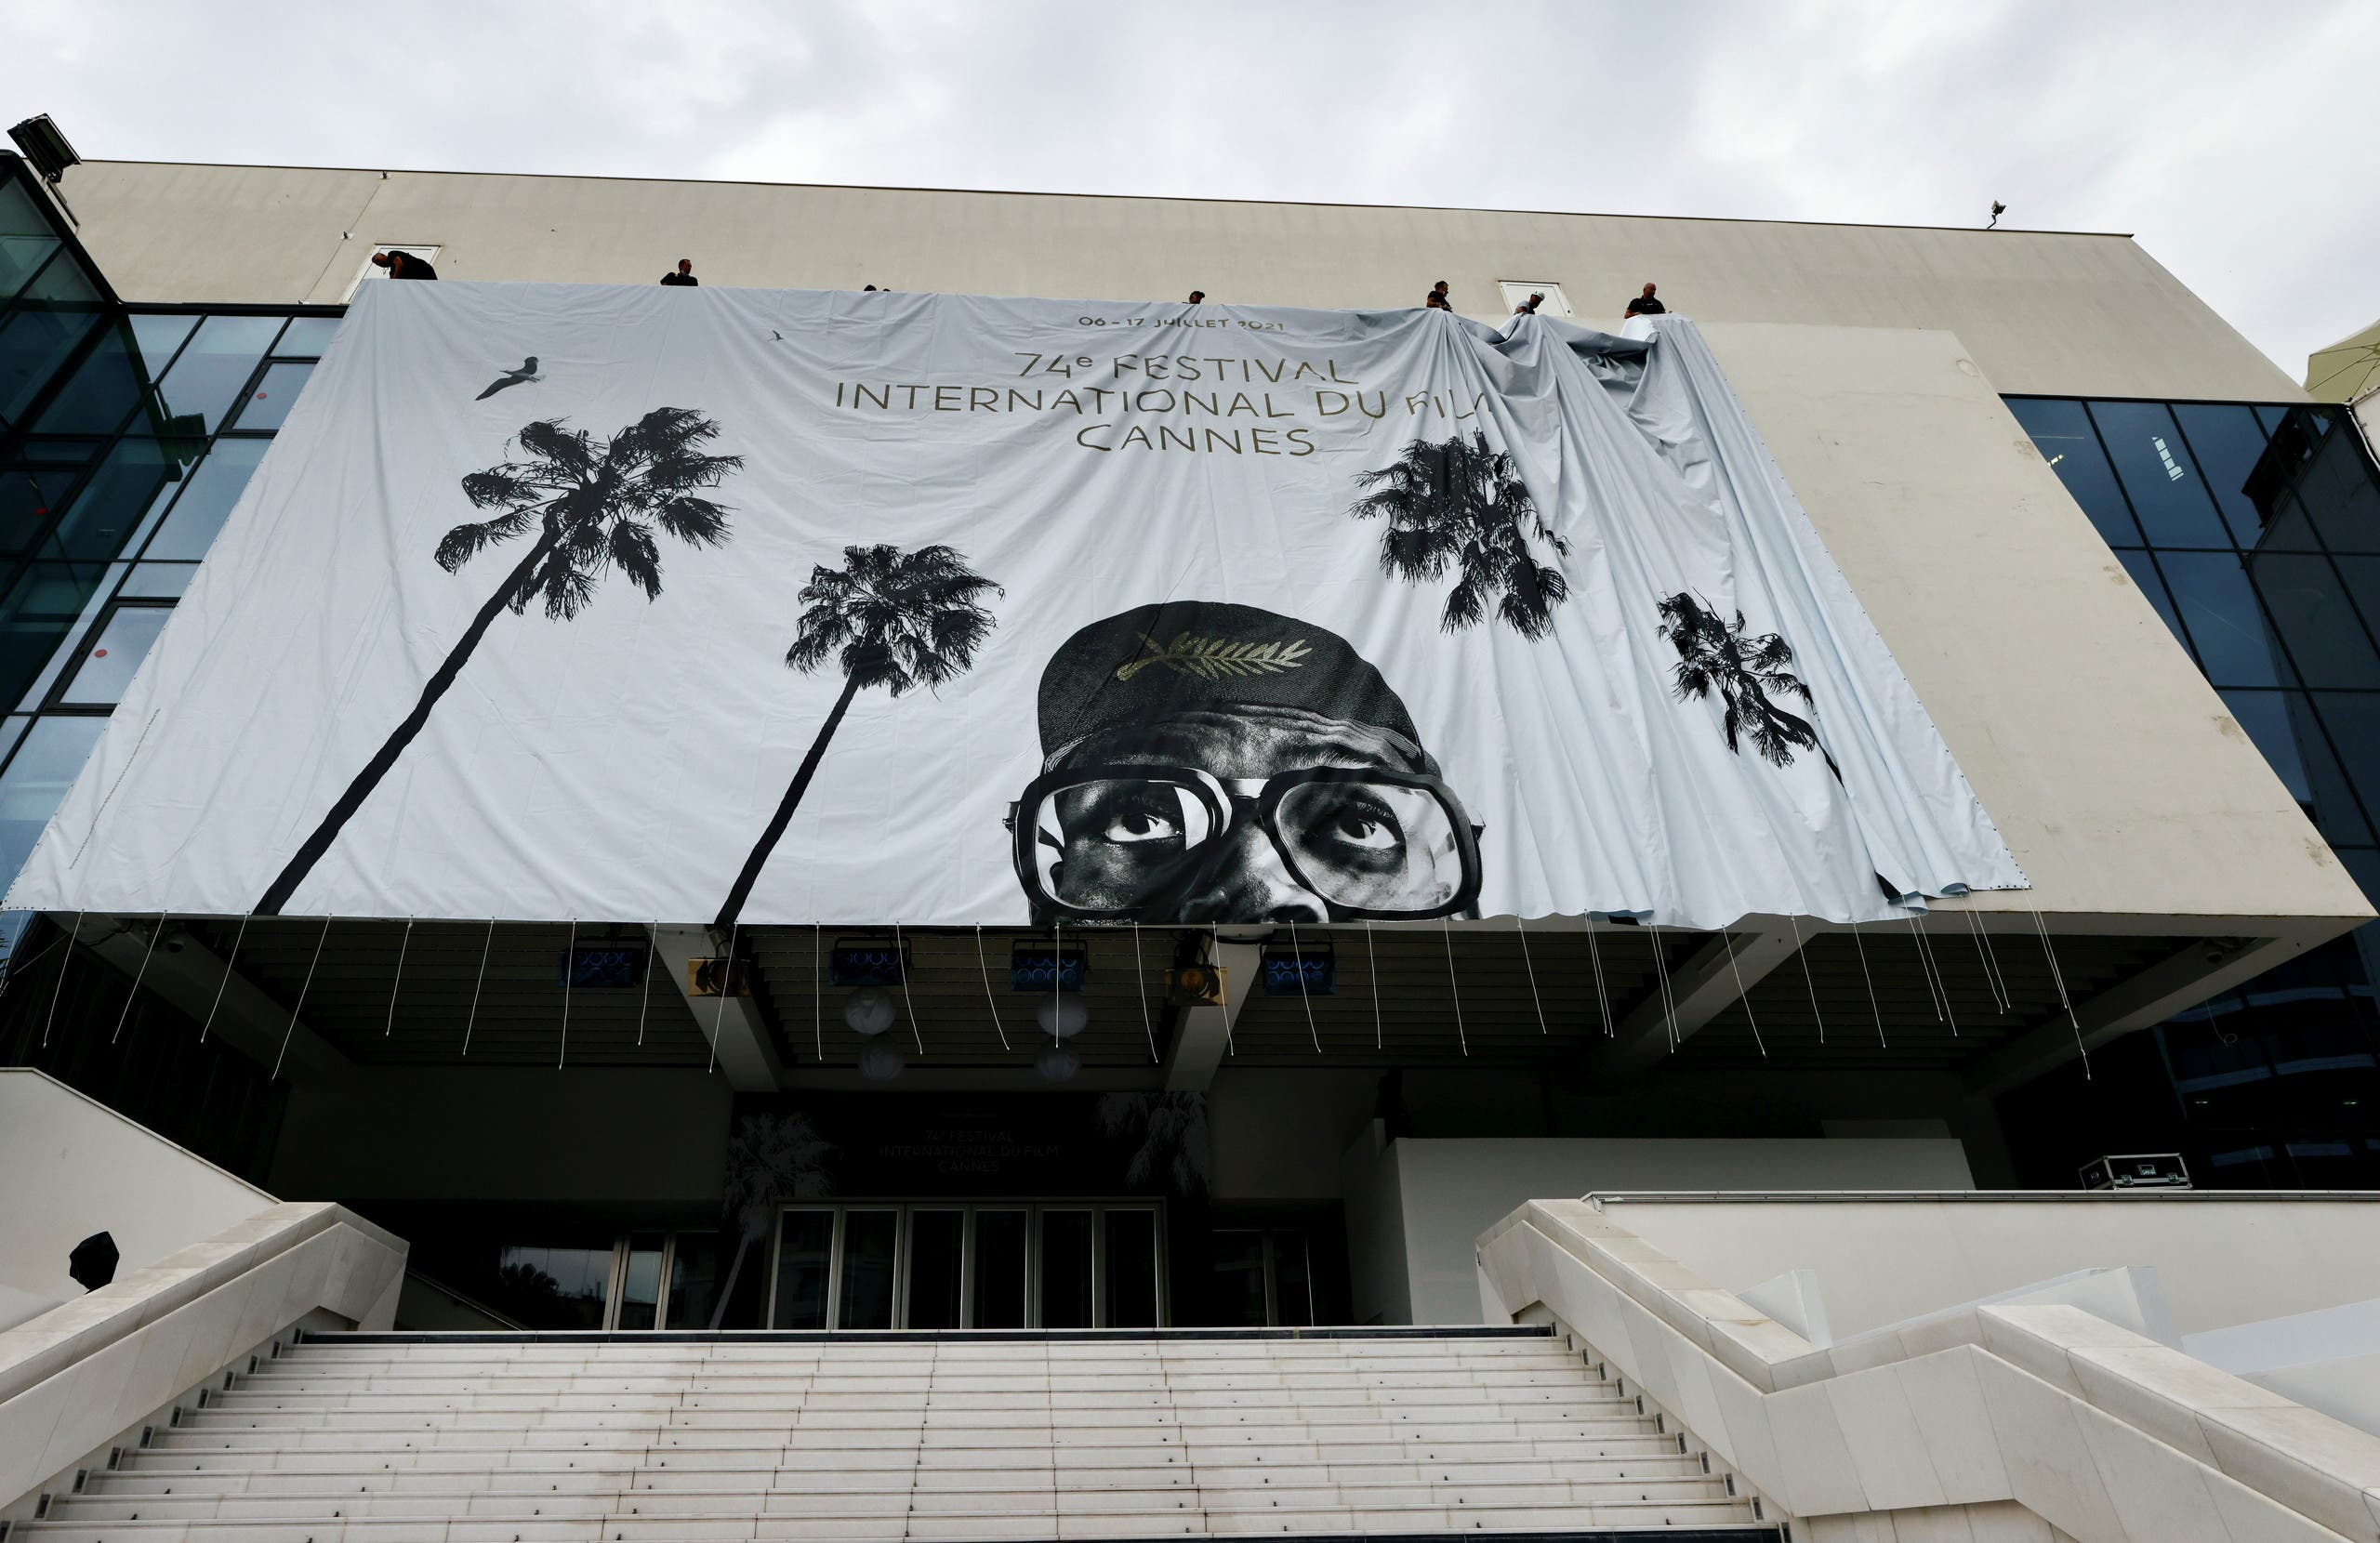 Workers set up a giant canvas of the official poster featuring Spike Lee on the facade of the festival palace, ahead of the opening ceremony of the 74th Cannes Film Festival, in Cannes, France, July 4, 2021. (Reuters)